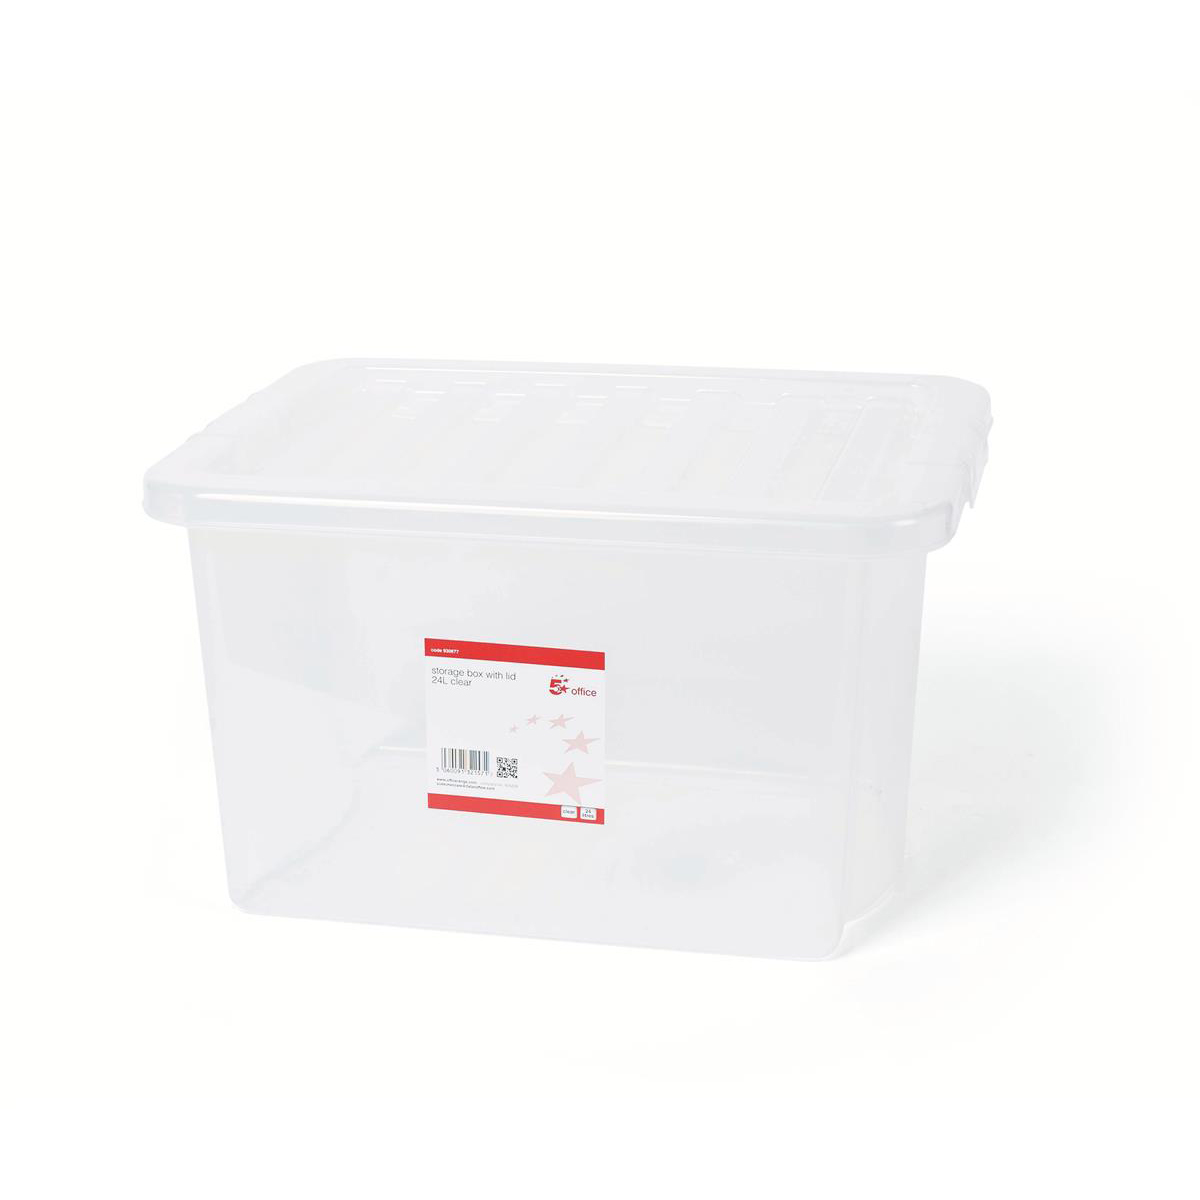 Tool Boxes 5 Star Office Storage Box Plastic with Lid Stackable 24 Litre Clear